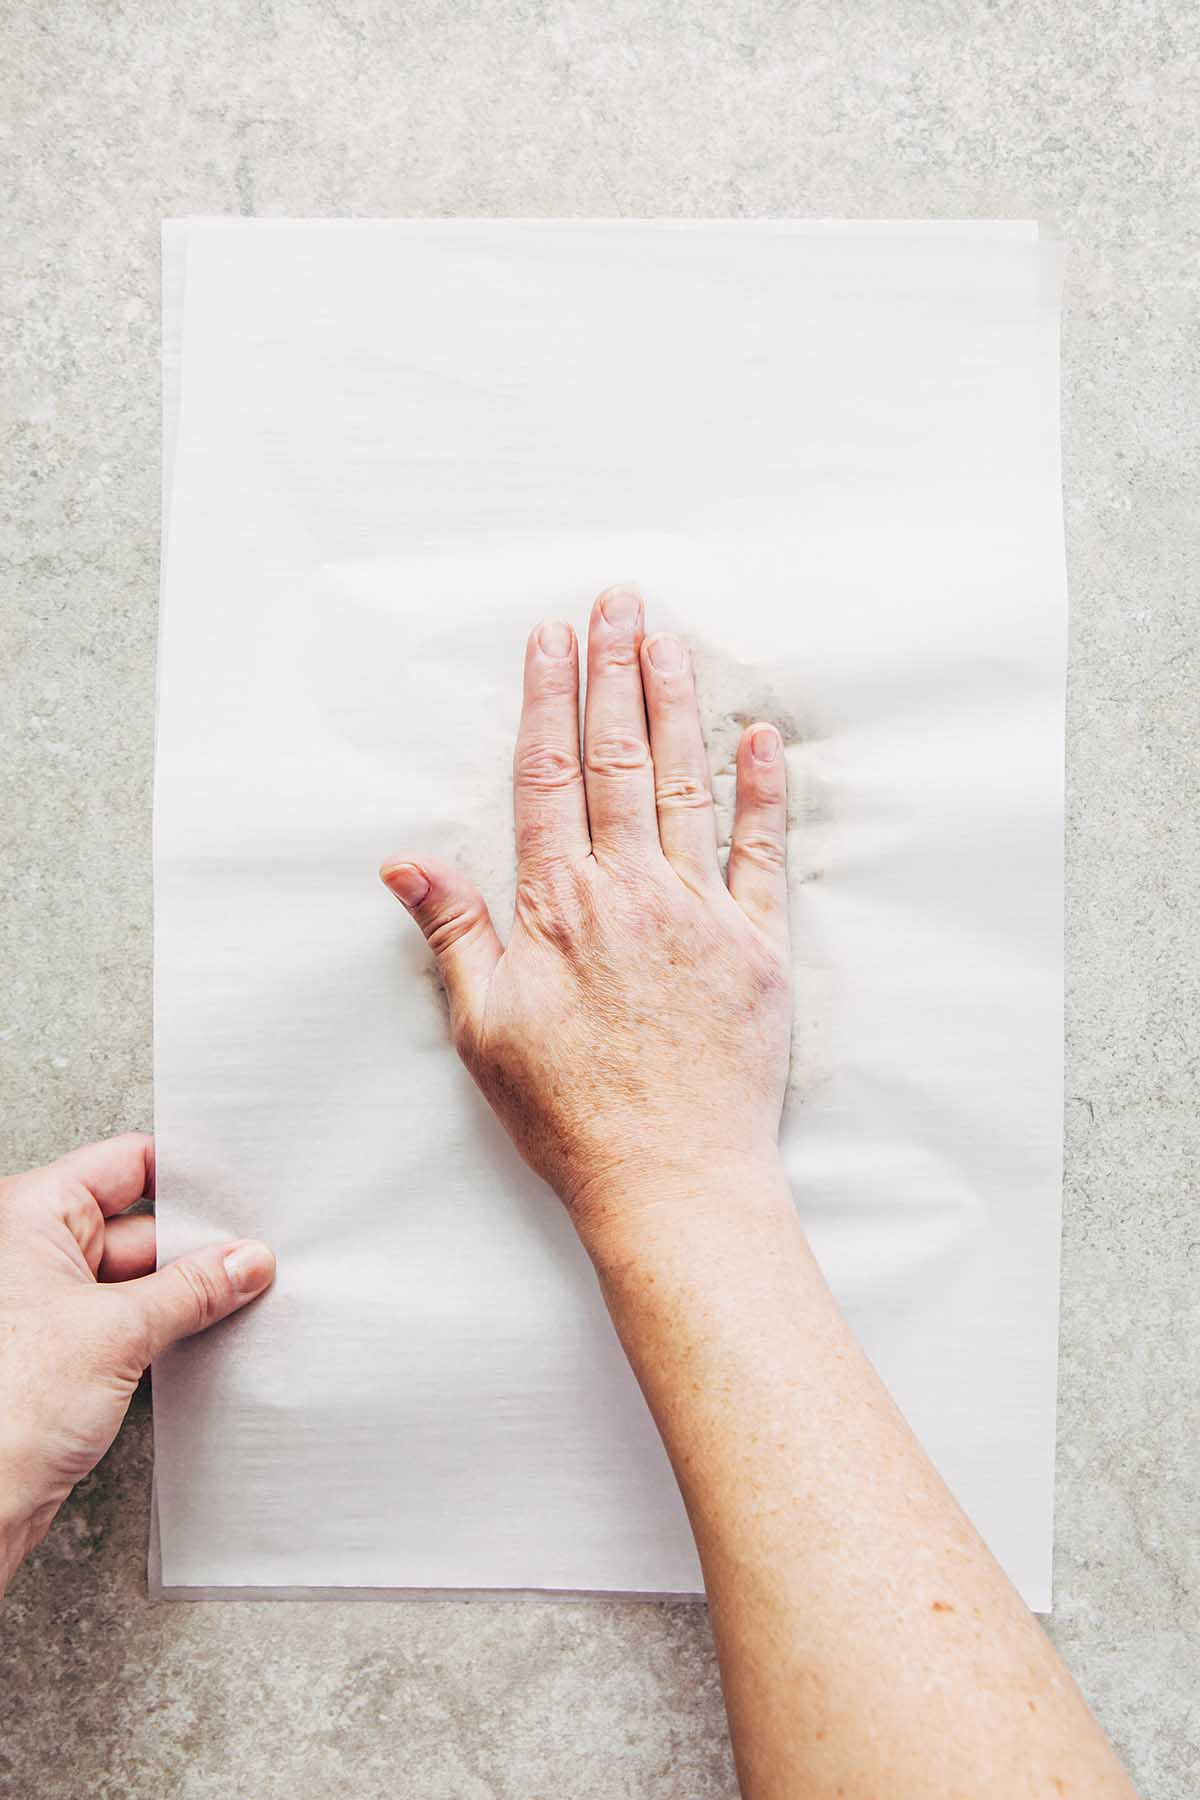 A hand flattening dough between two pieces of parchment paper.